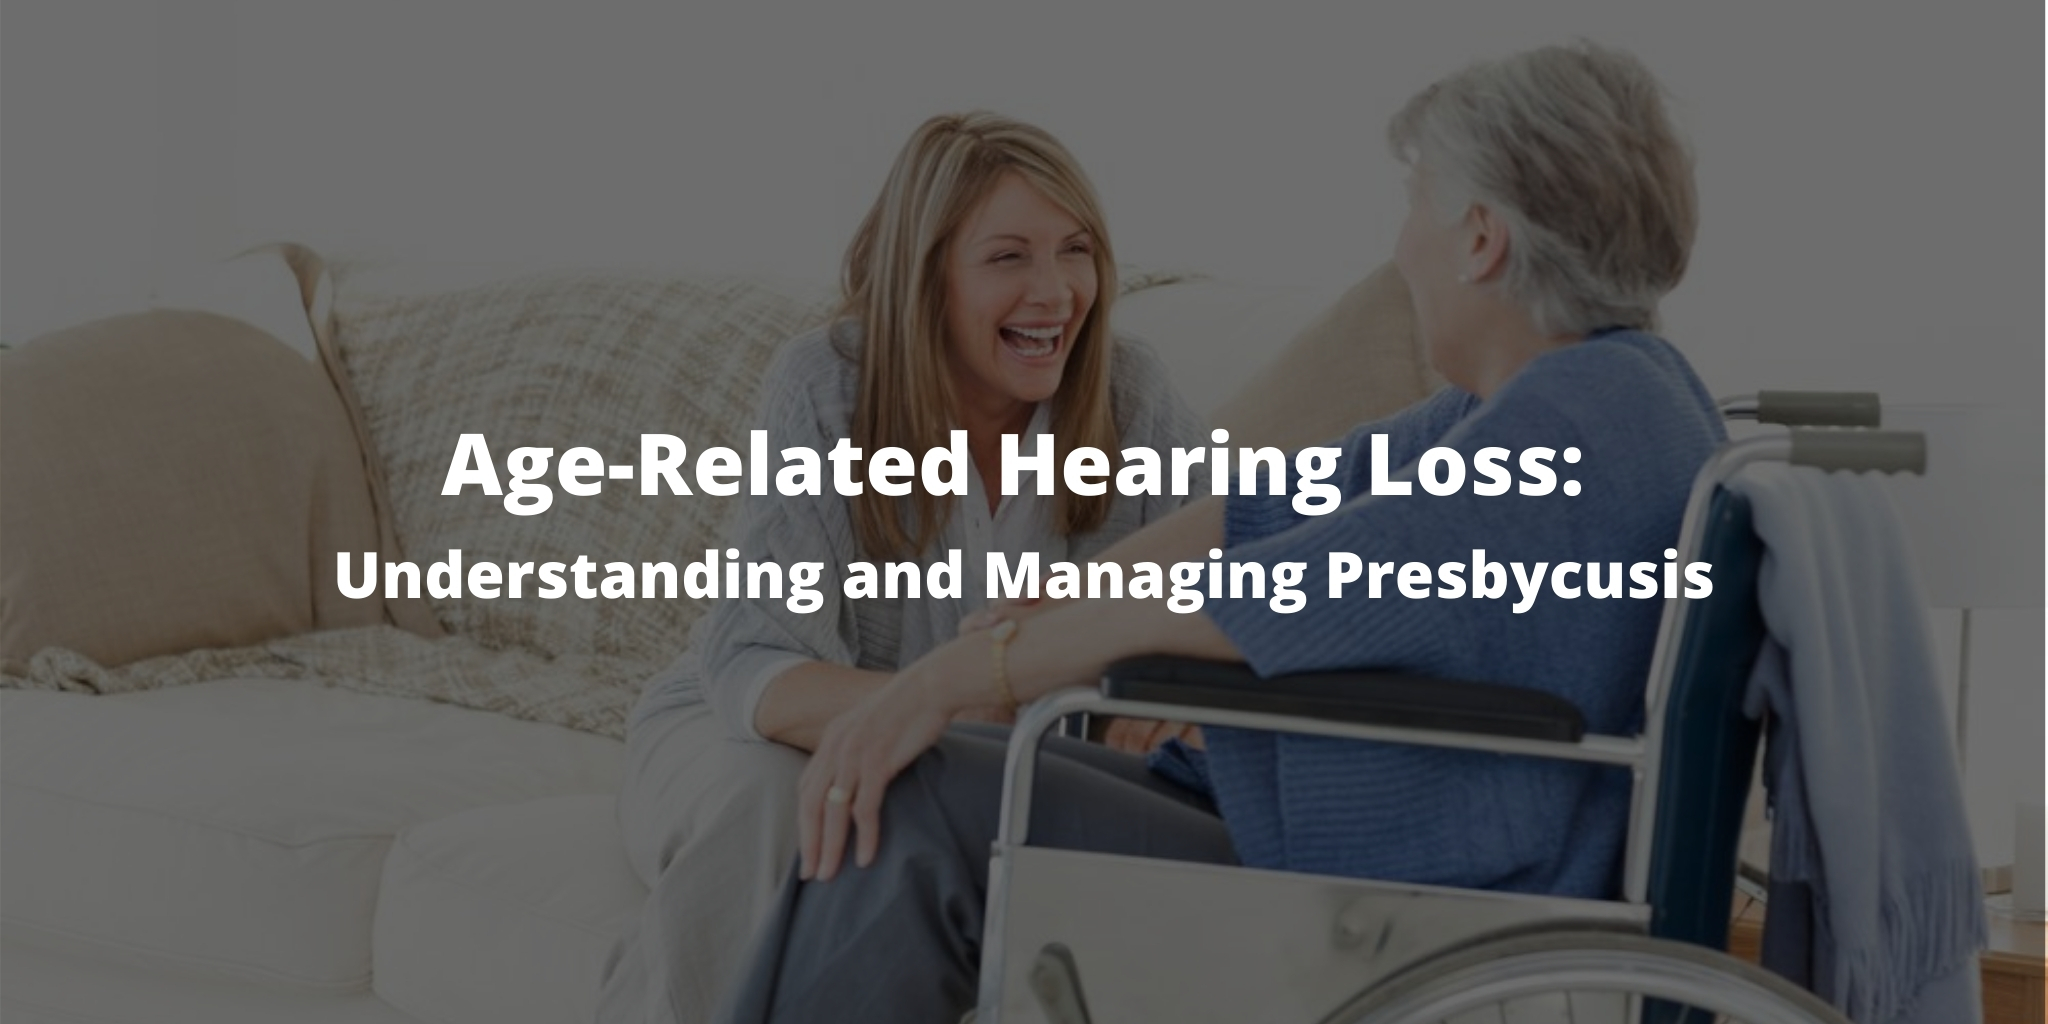 Age-Related Hearing Loss: Understanding and Managing Presbycusis